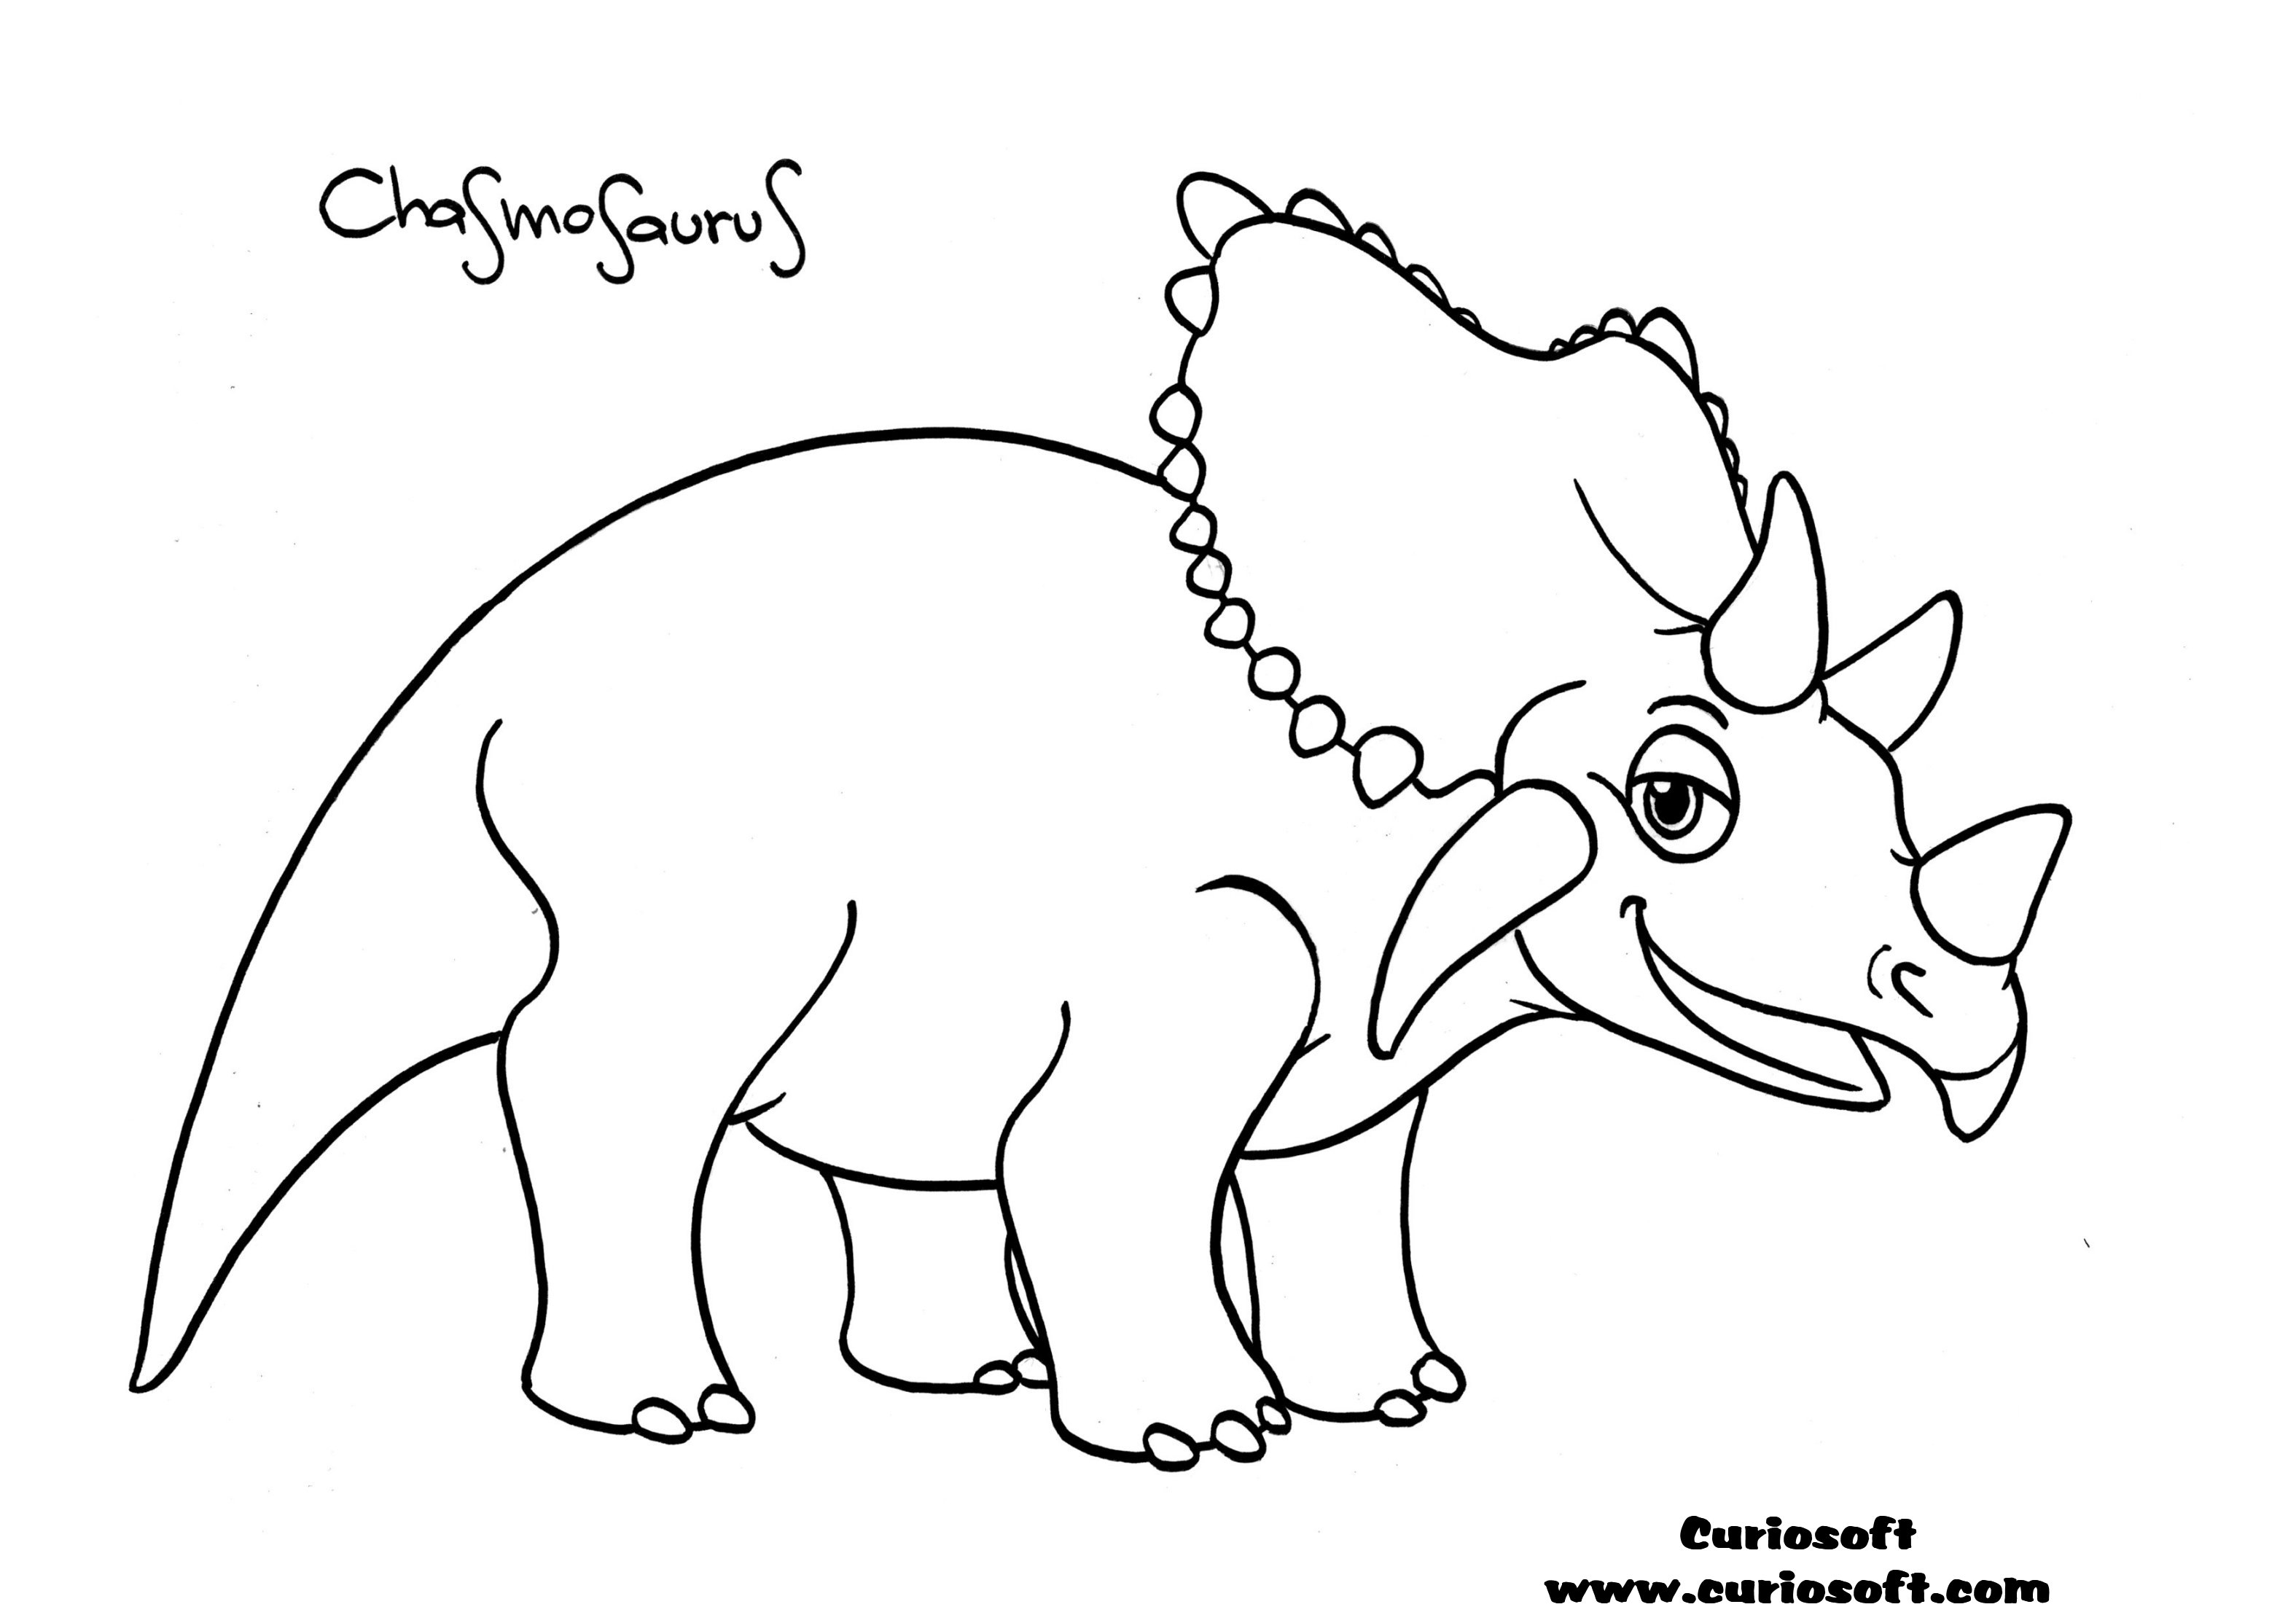 Free coloring pages by mail - Fill Out Your E Mail Address To Receive Our Monthly Newsletter Full Of Free Kids Stuff